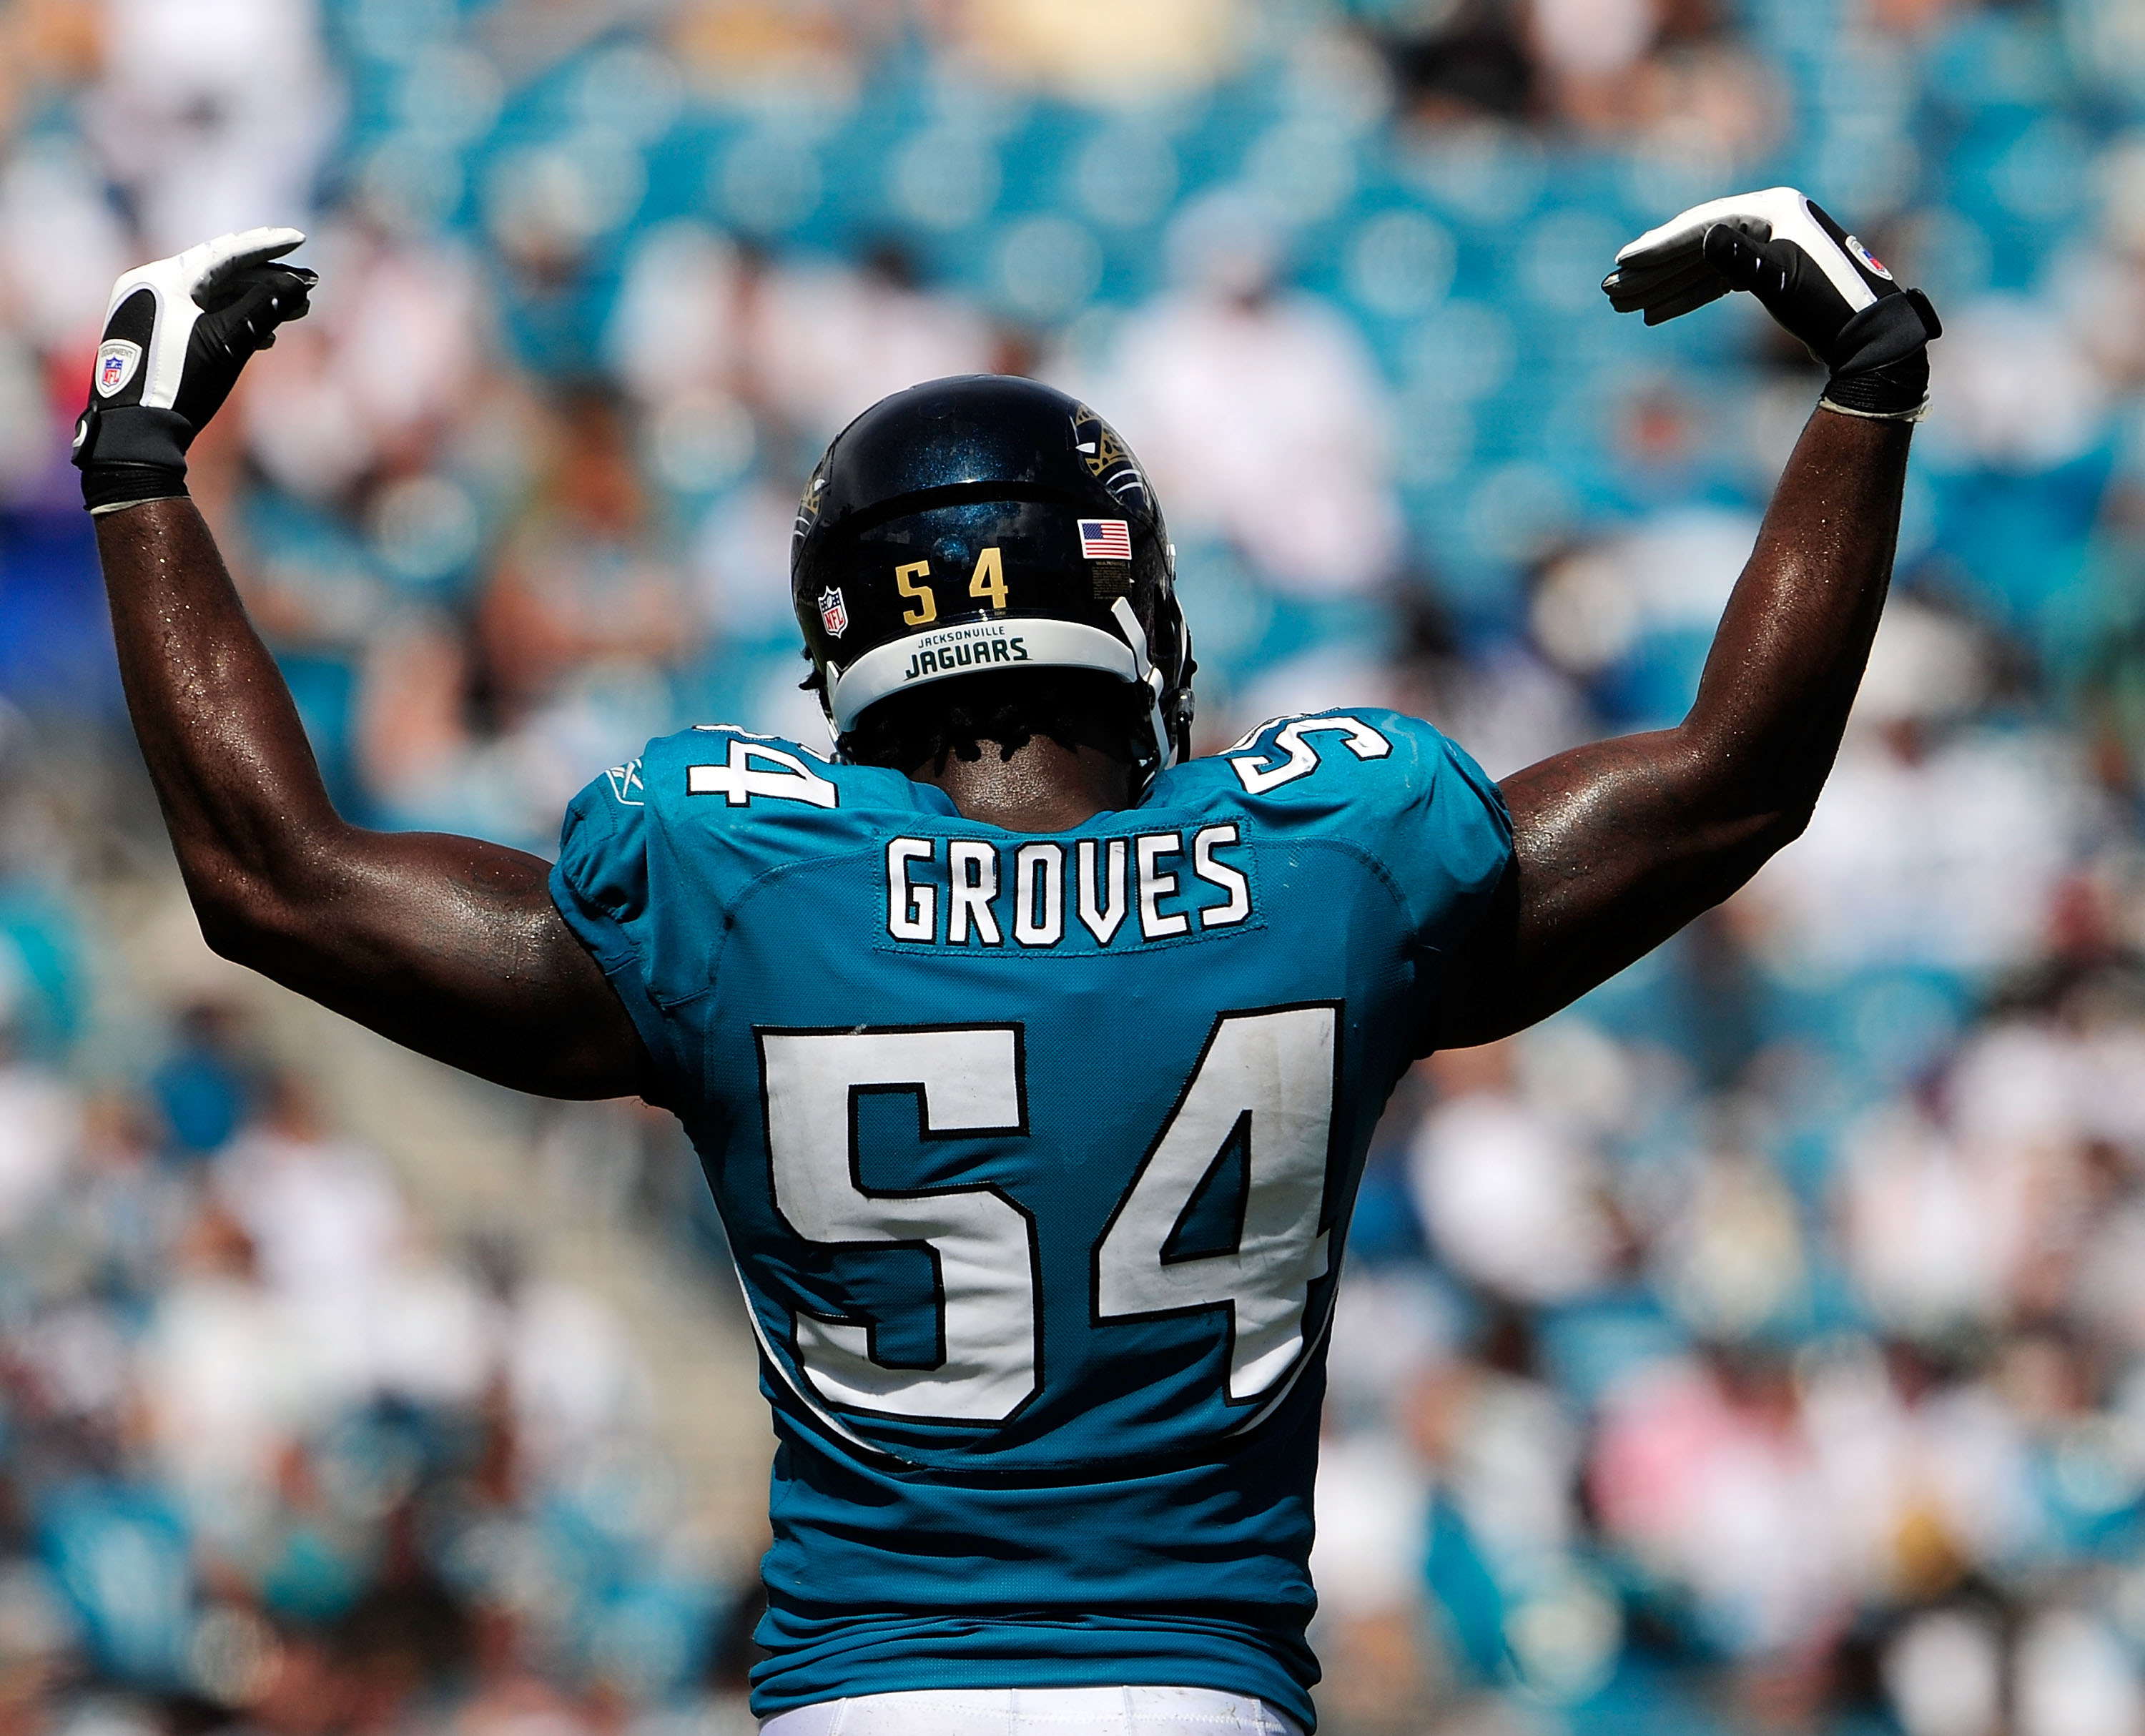 JACKSONVILLE, FL - SEPTEMBER 20:  Quentin Groves #54 of the Jacksonville Jaguars asks the crowd for noise during the game against the Arizona Cardinals at Jacksonville Municipal Stadium on September 20, 2009 in Jacksonville, Florida.  (Photo by Sam Greenw